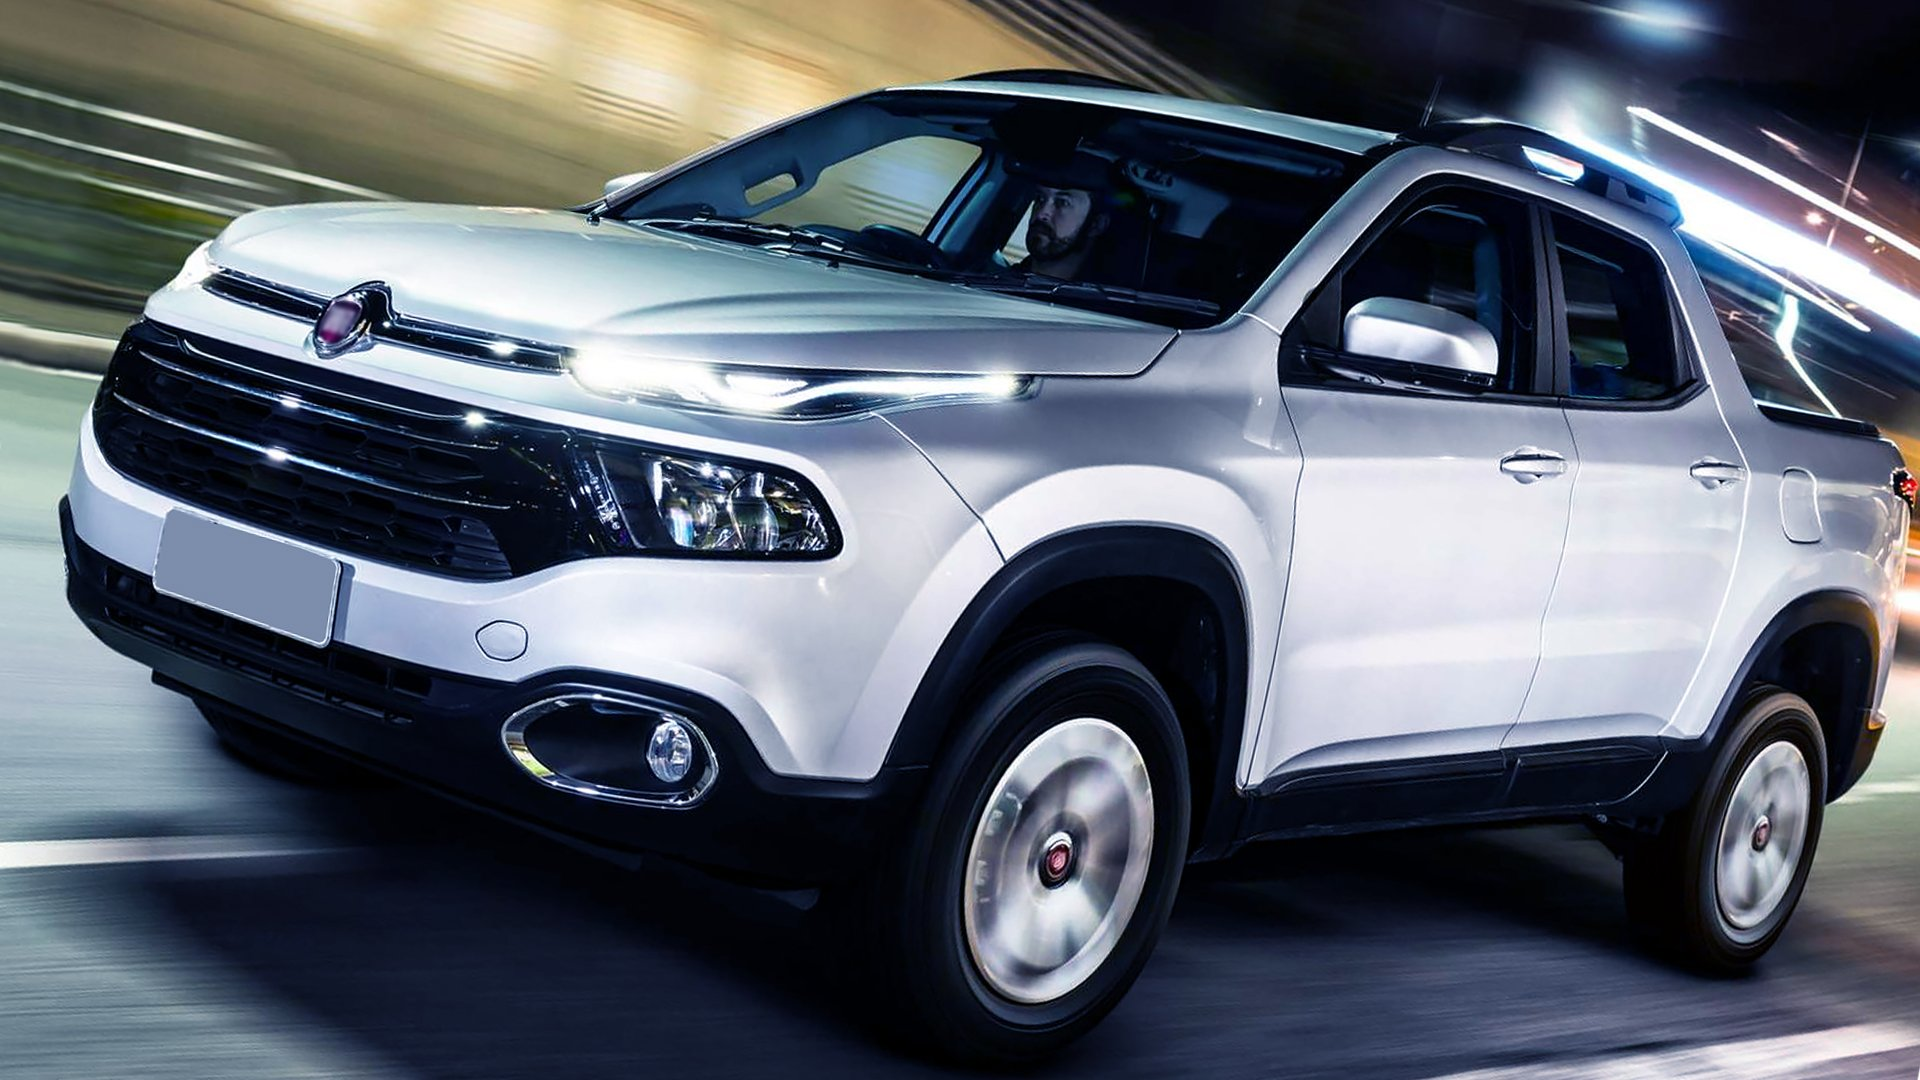 Changes Redesign Fiat Toro HD